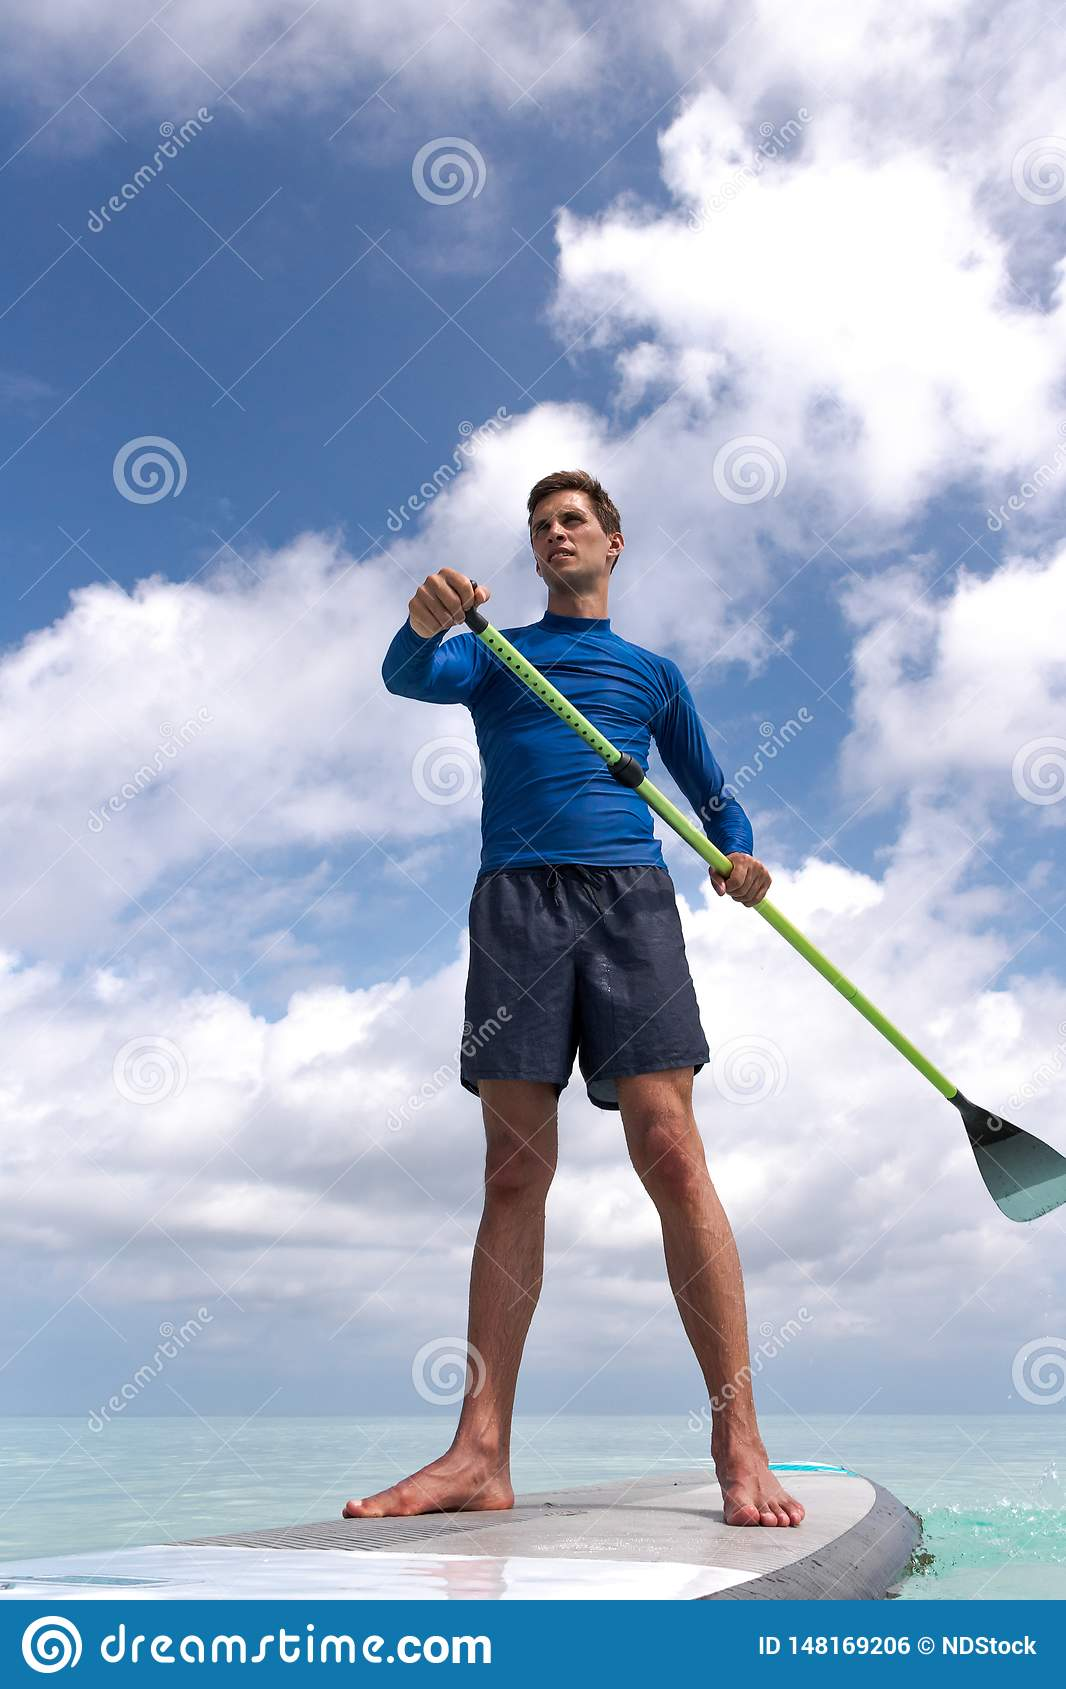 Young Adult Man with stand up paddle in clear blue water